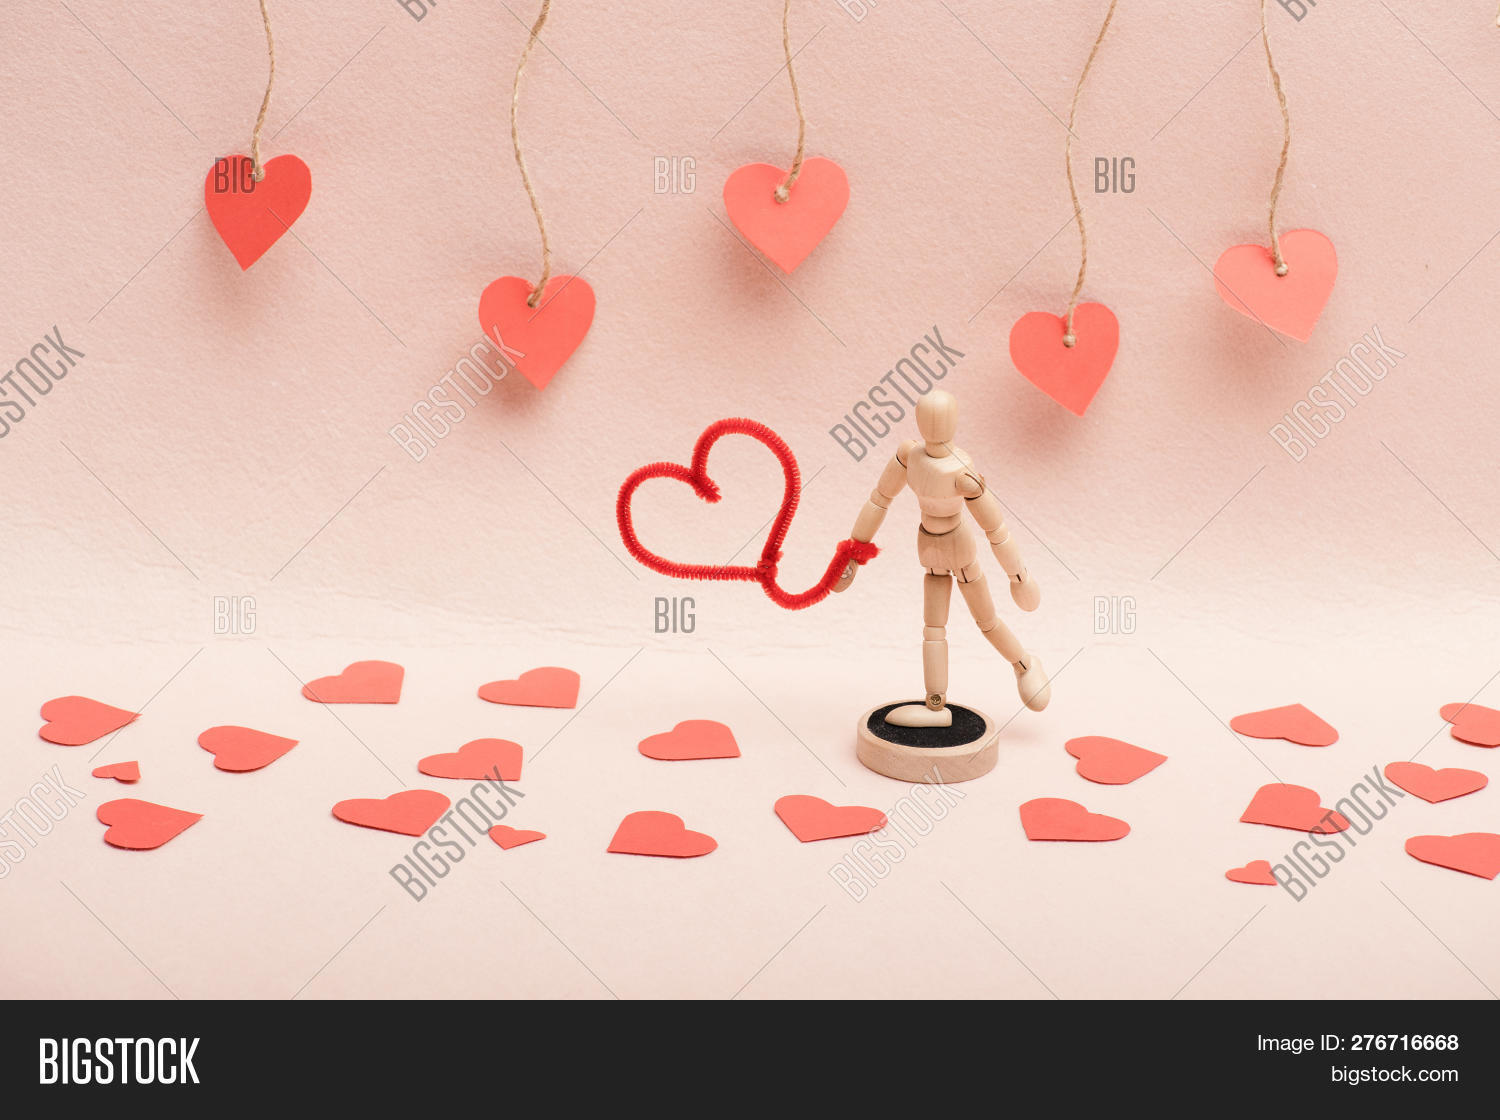 Wooden Marionette Image & Photo (Free Trial) | Bigstock